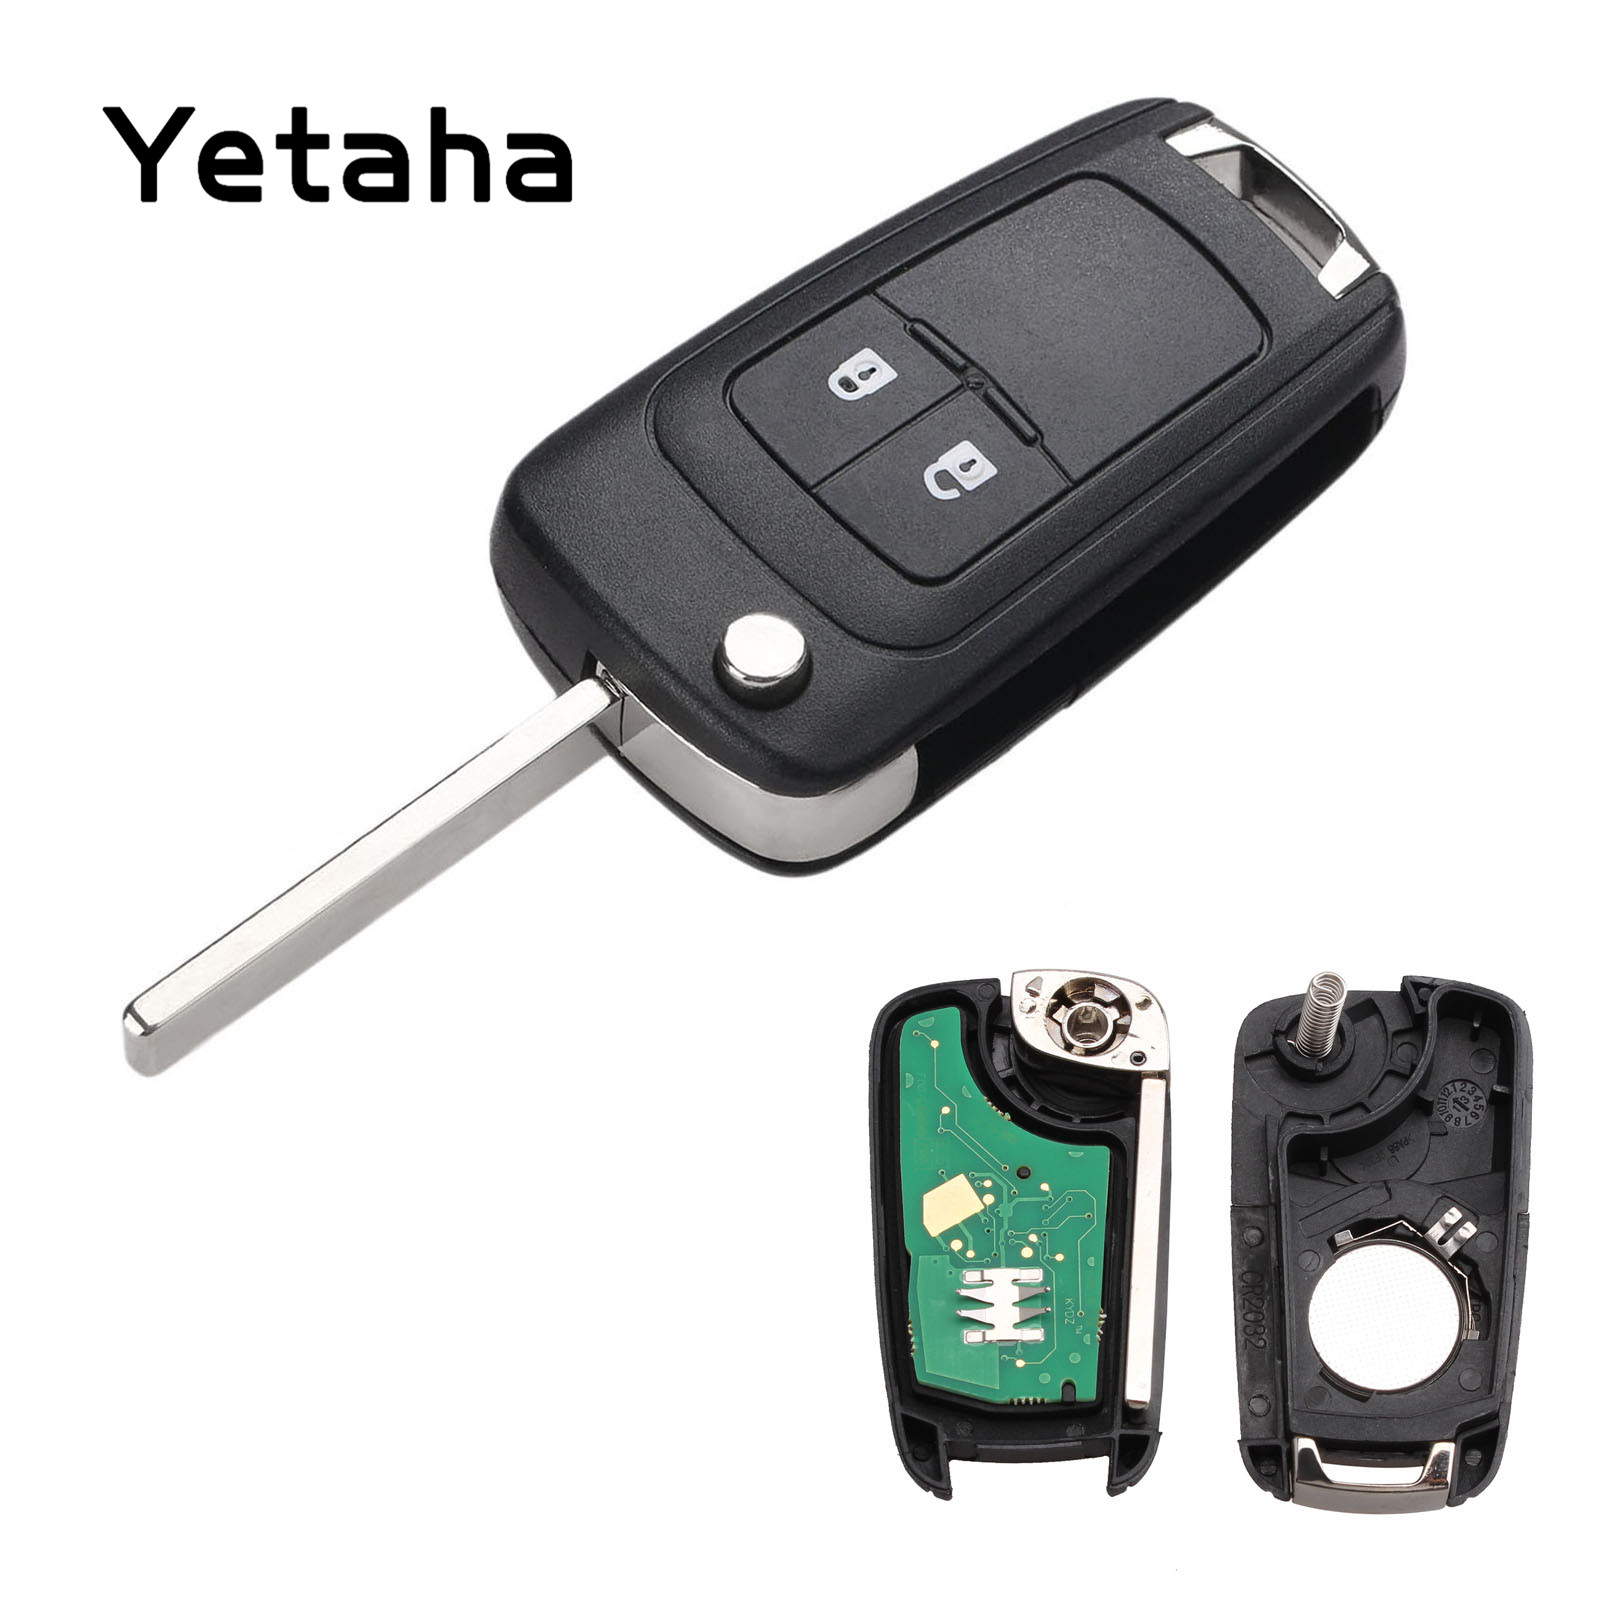 Yetaha 2 Buttons Car Remote Key 433MHz Fit For Chevrolet